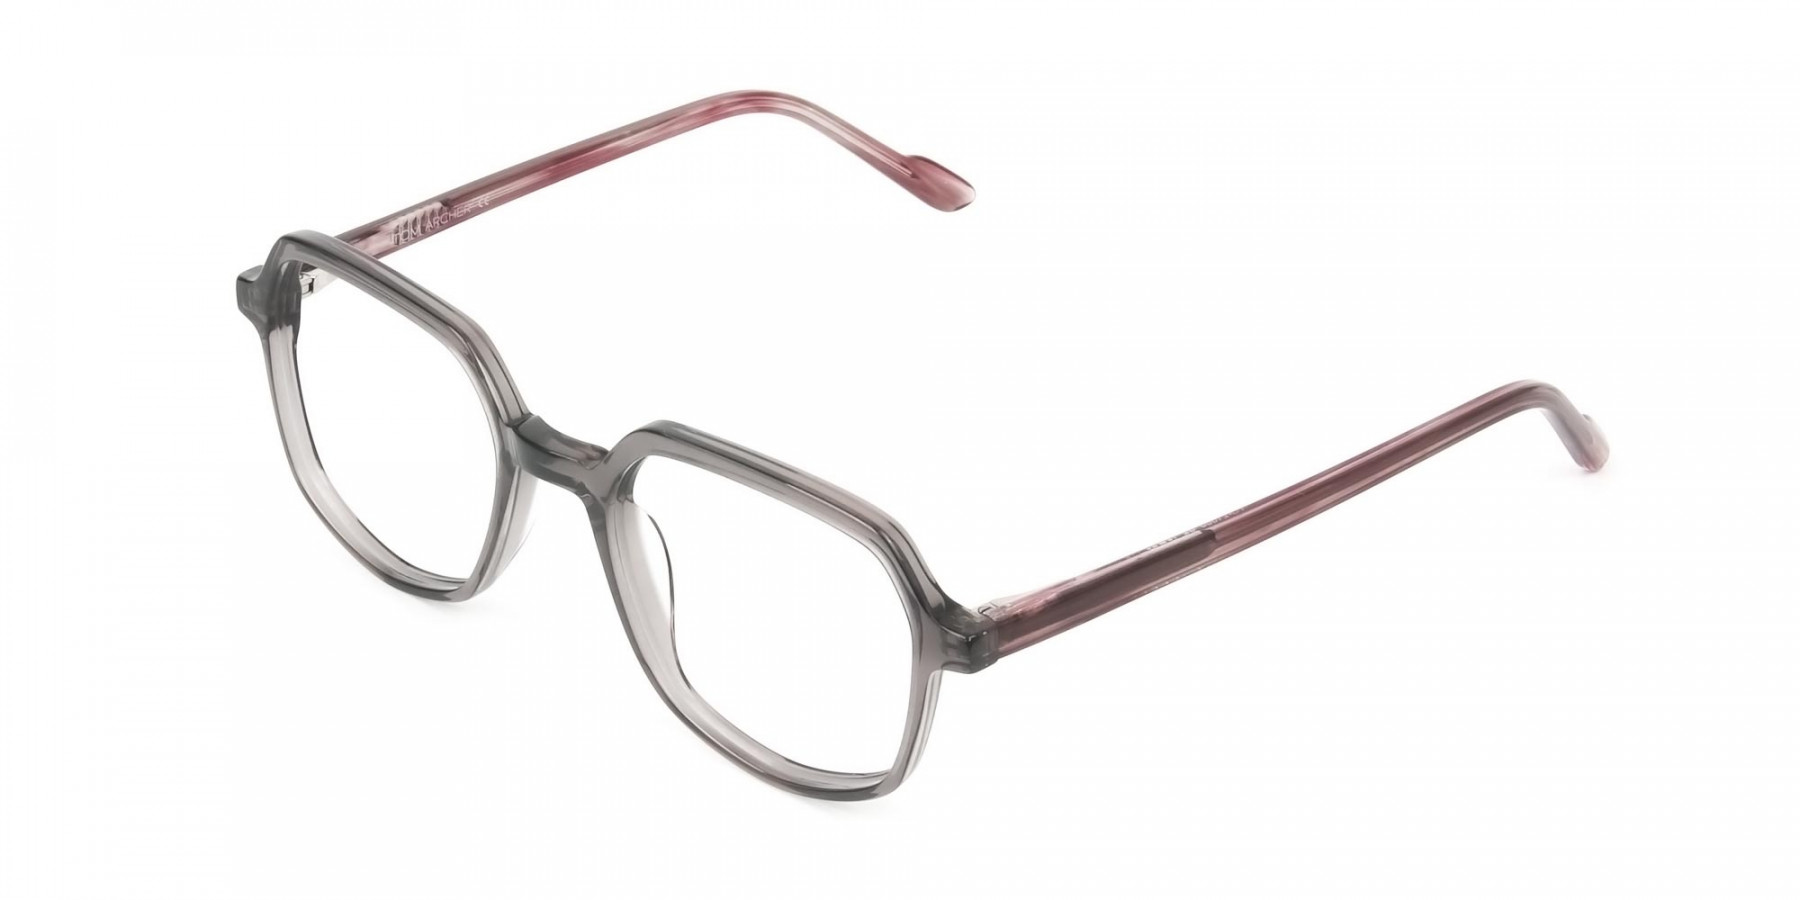 Geometric Heptagon Glasses in Grey Red - 1